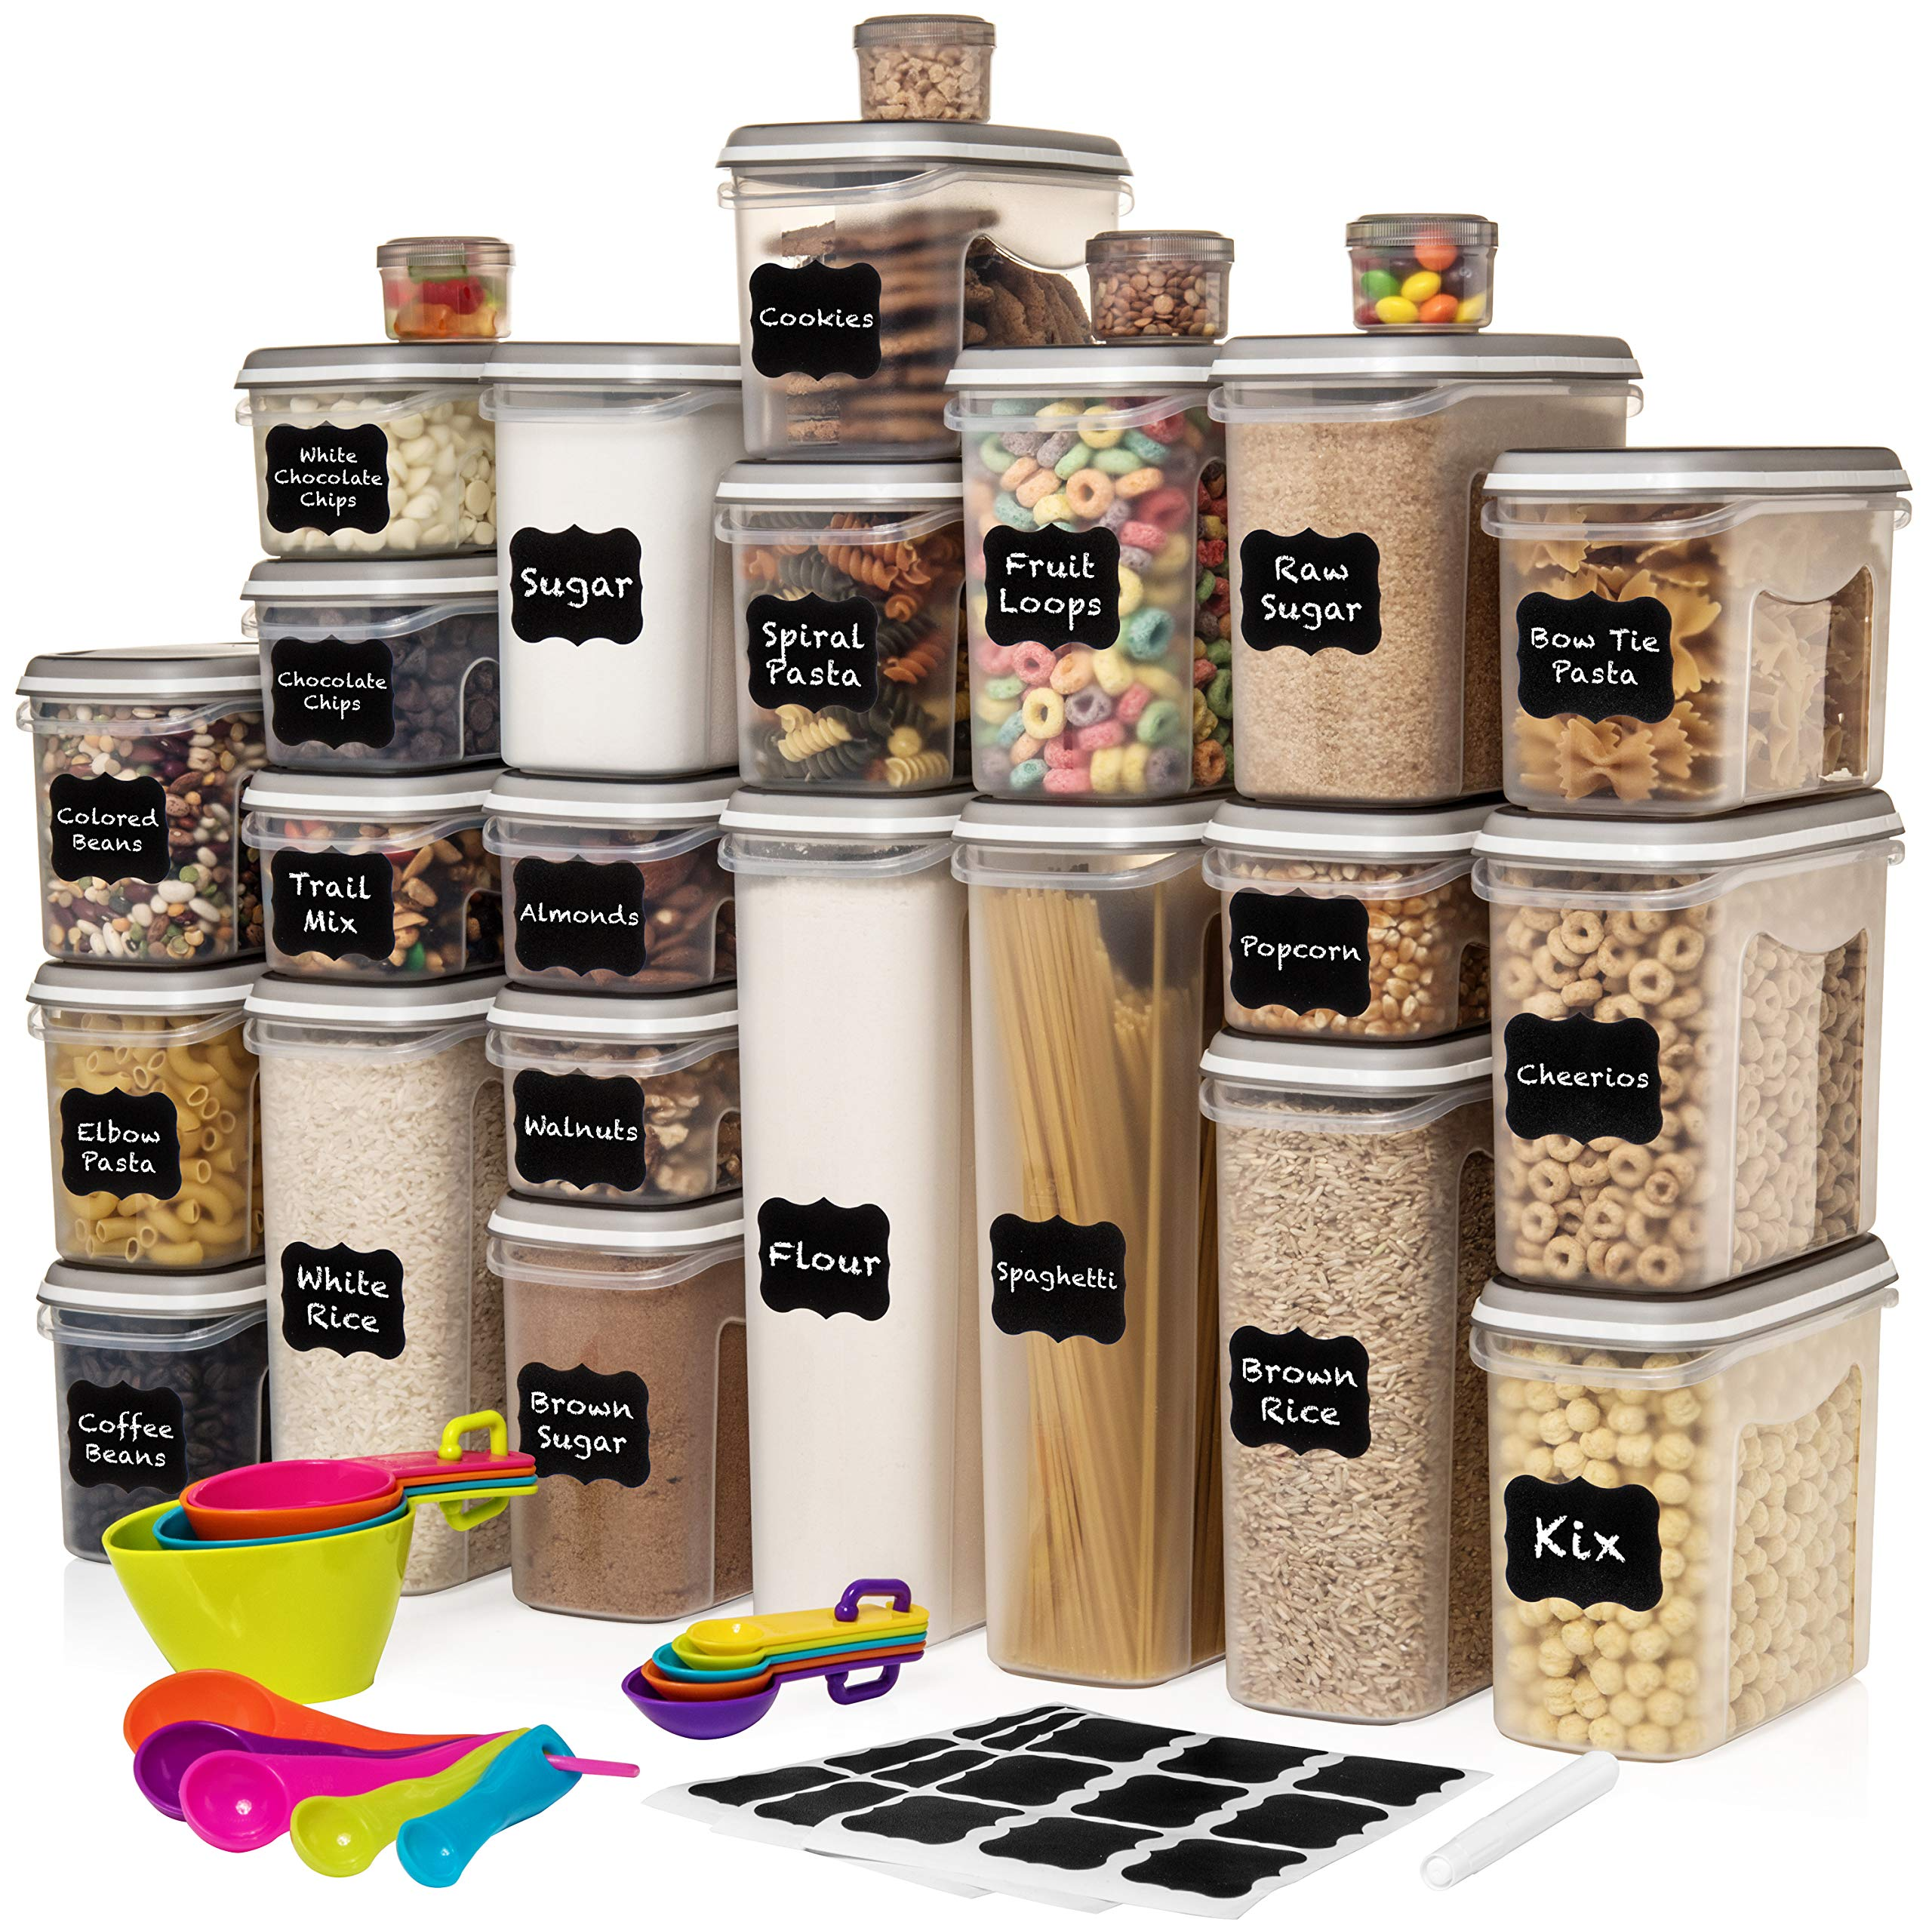 LARGEST Set of 52 Pc Food Storage Containers (26 Container Set) Shazo Airtight Dry Food Space Saver w Interchangeable Lid, 14 Measuring Cups + Spoons, Chalkboard Labels + Marker - One Lid Fits All